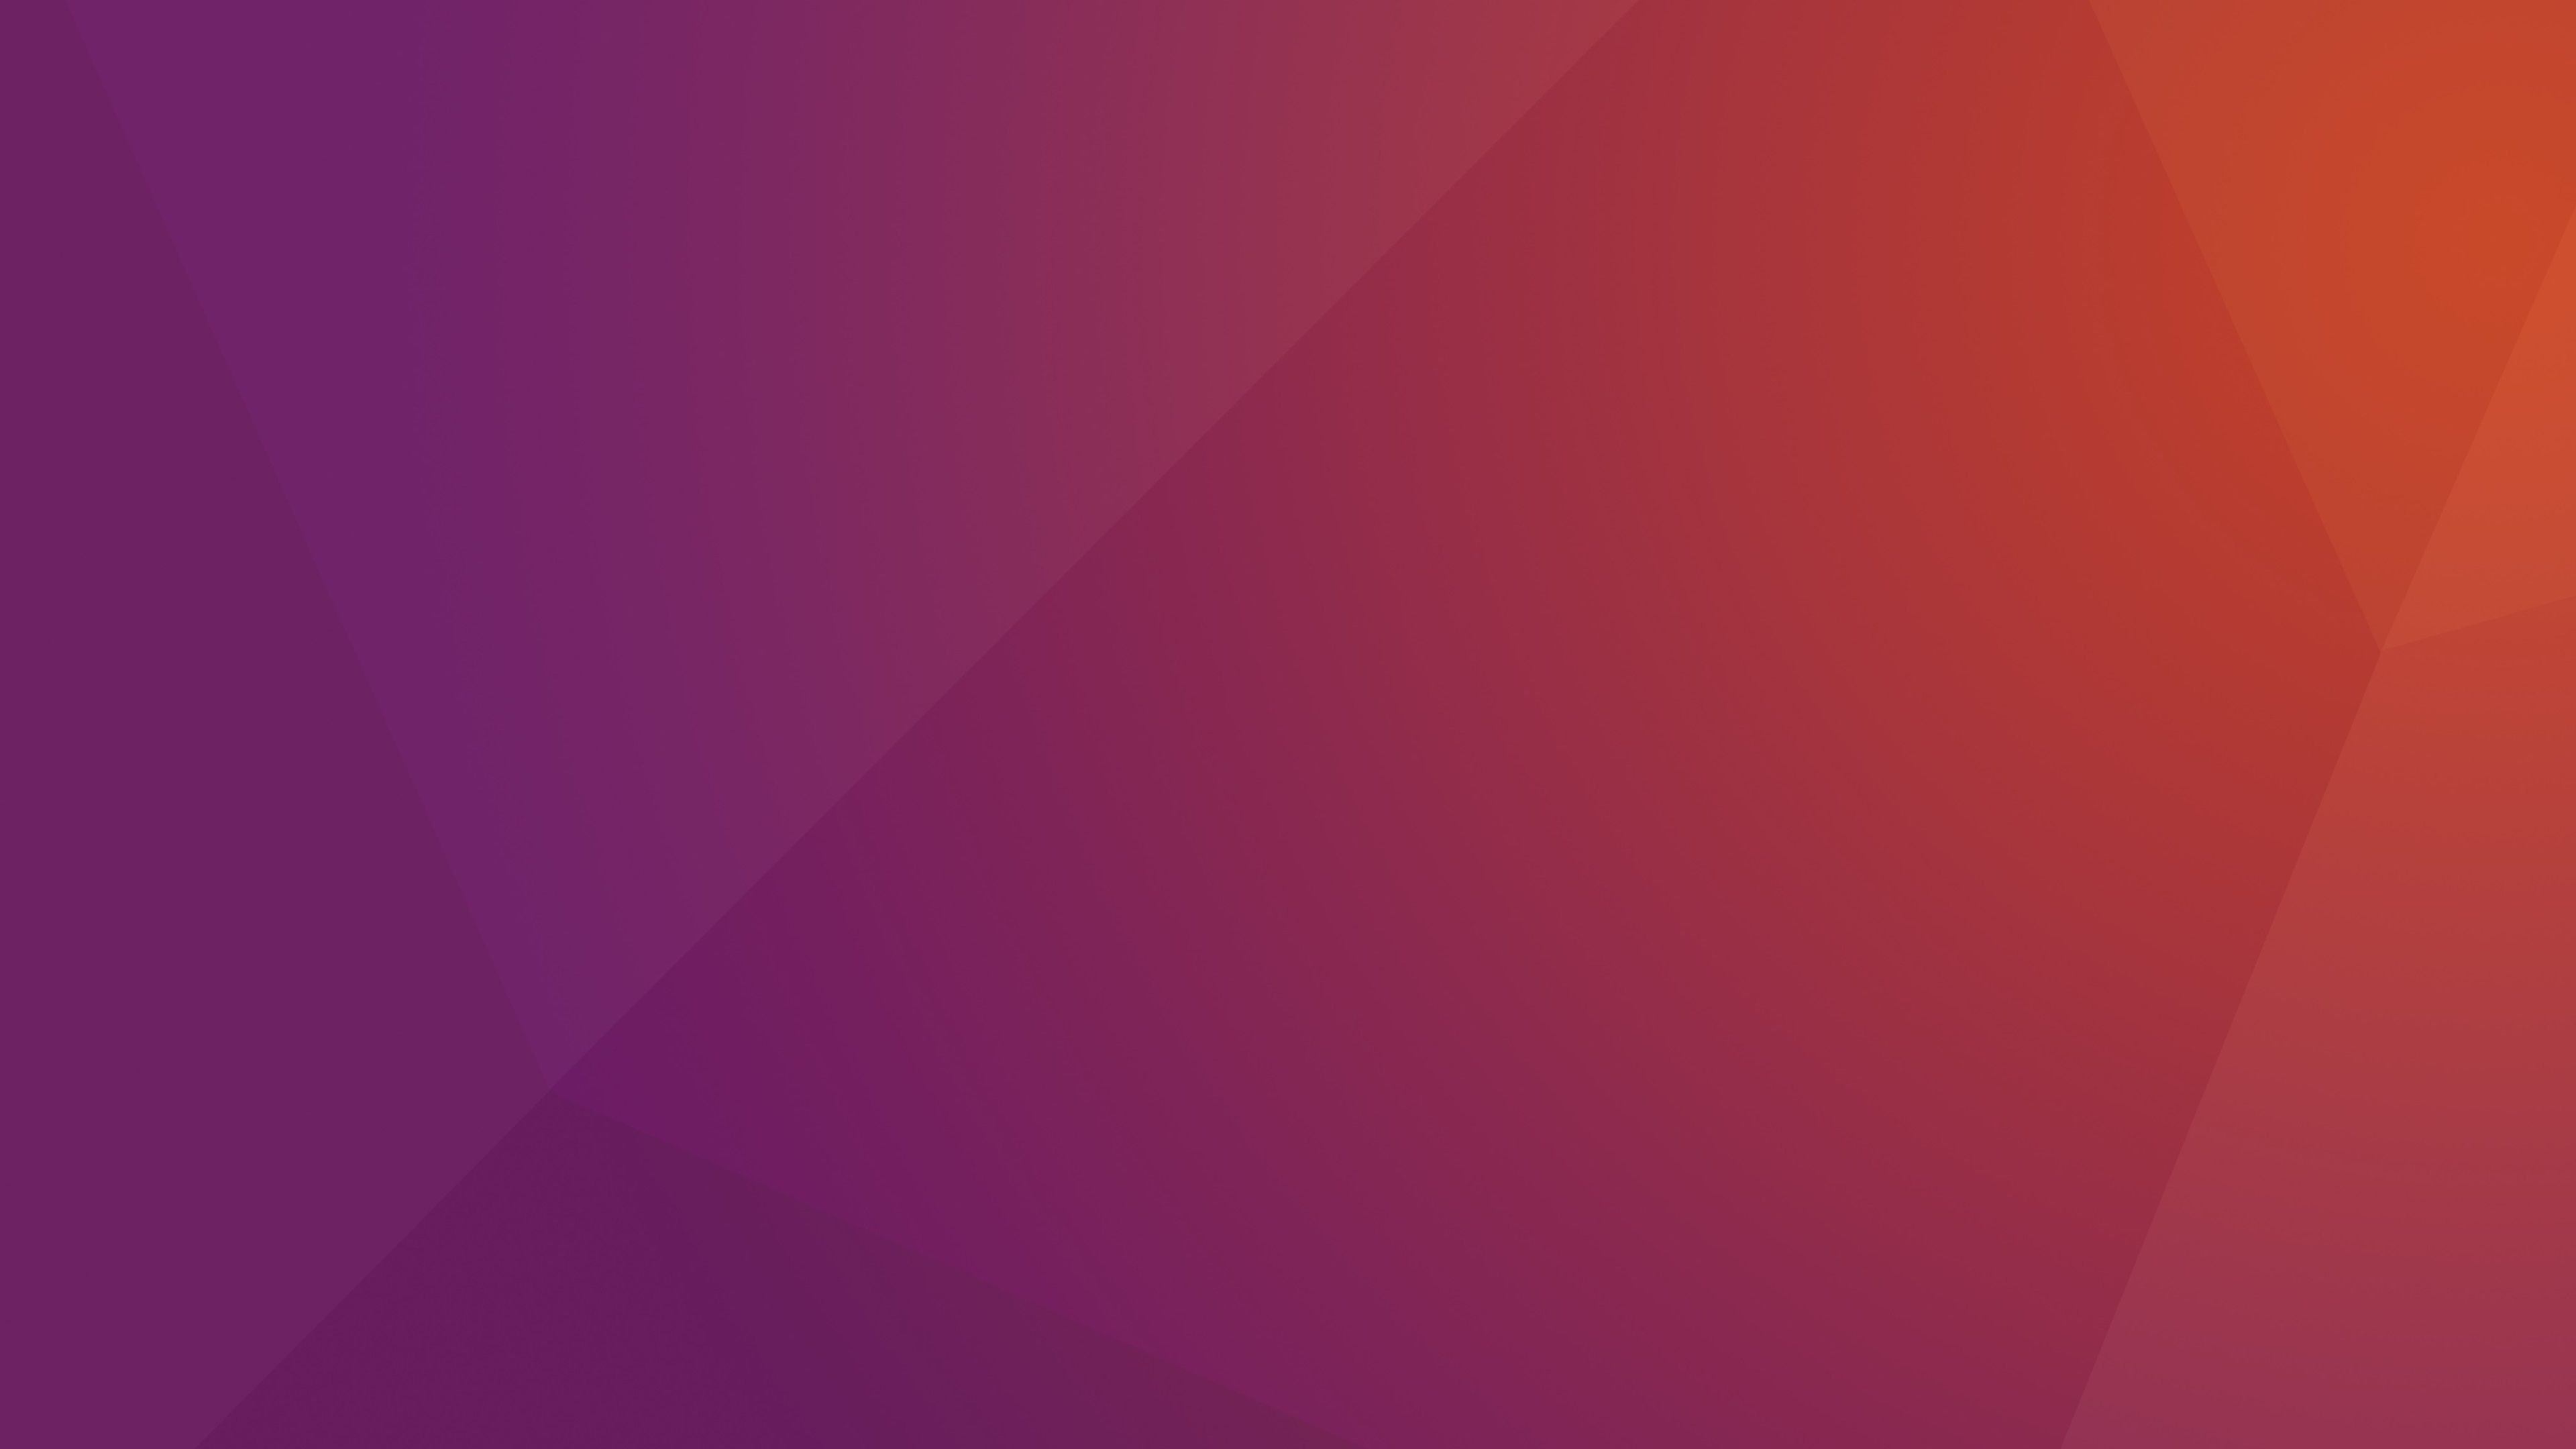 3840x2160 Ubuntu 4k Hd Wallpaper Desktop En 2019 4k Hd